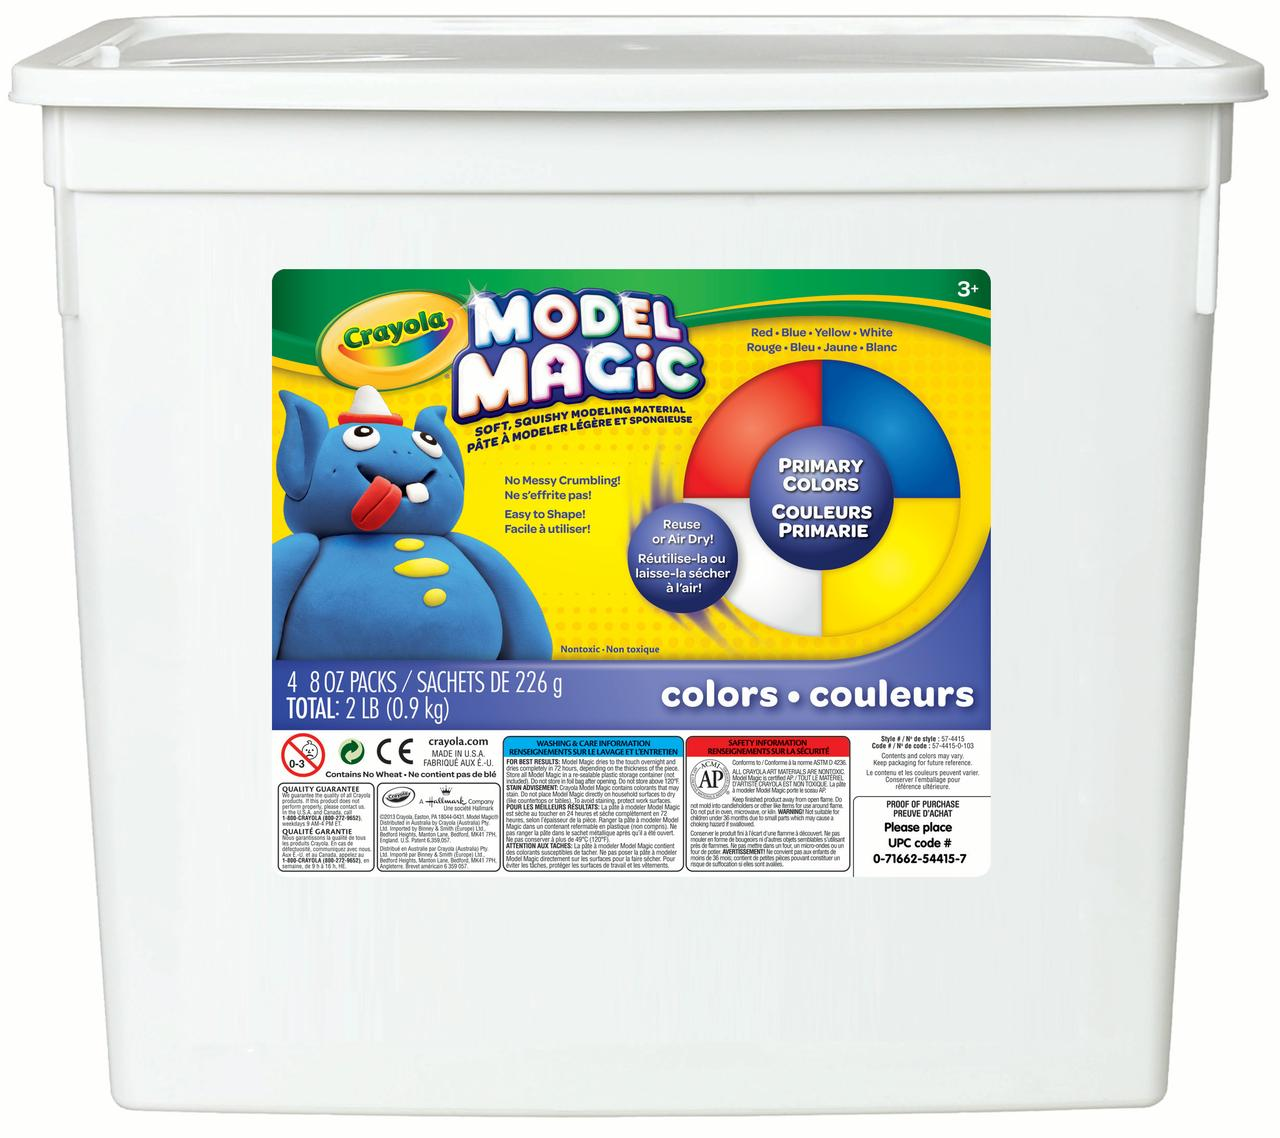 Crayola Model Magic Modeling Compound, 8 oz each Blue Red White Yellow, 2lbs. by Crayola